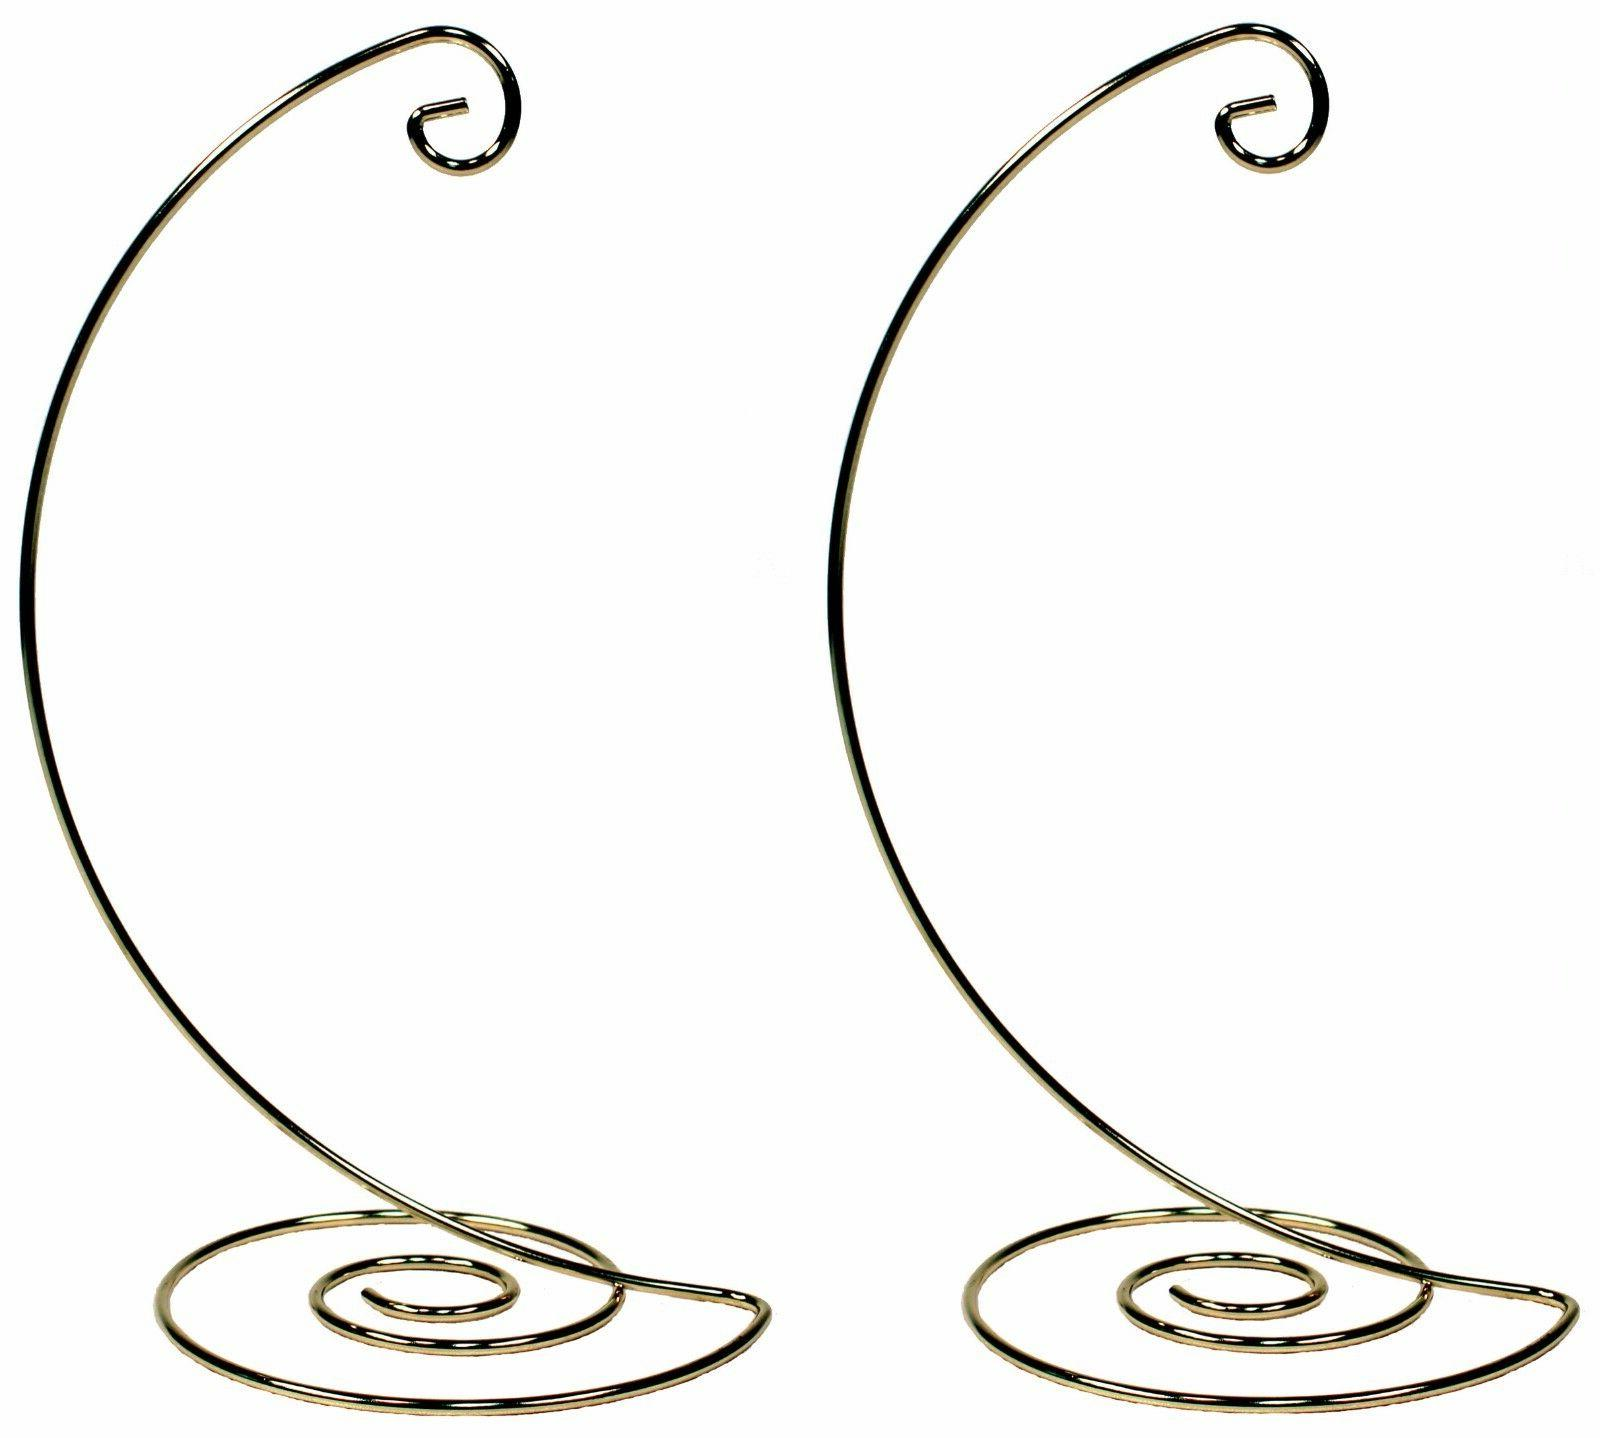 Fancy Gold Metal Ornament Display Hanger Stands, 10 Inch Tal